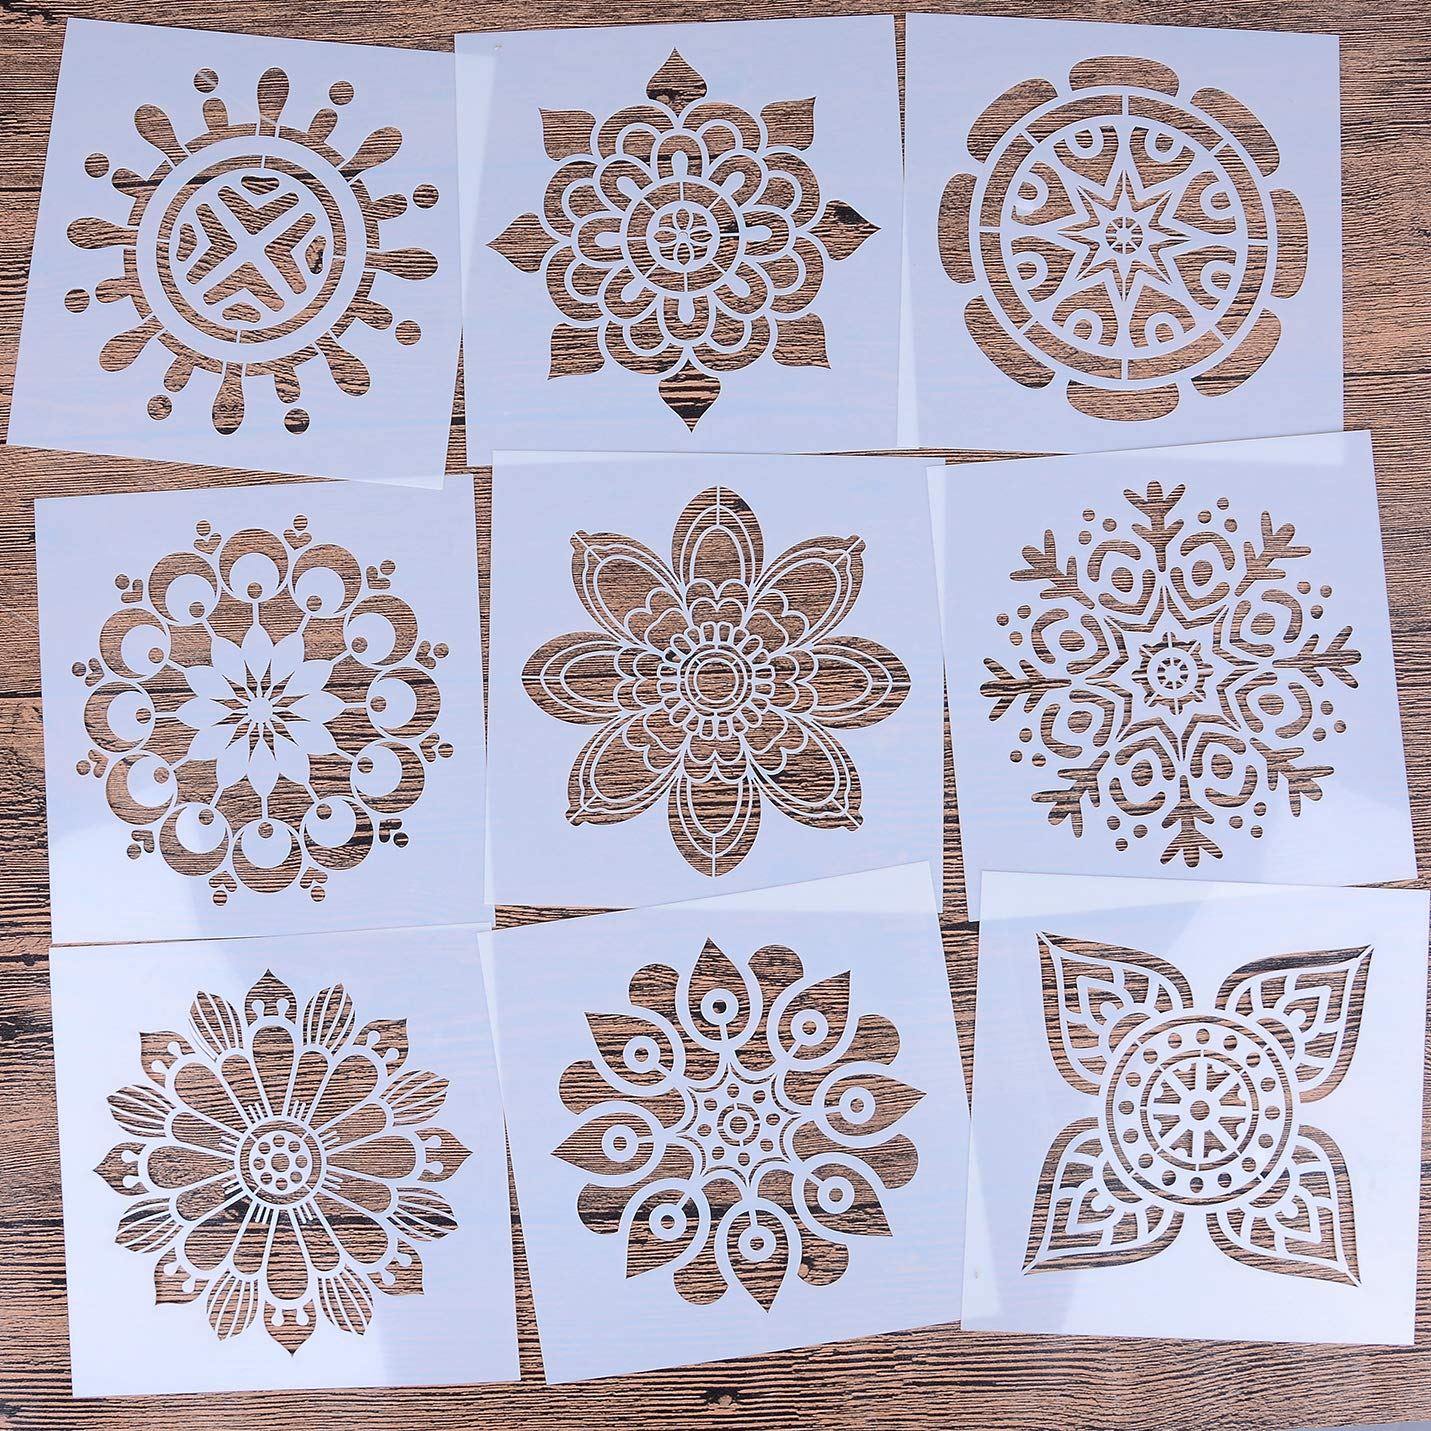 LOCOLO Reusable Mandala Floor Stencil Set of 9 (6 x 6 inch) Painting Stencil, Laser Cut Painting Template Floor Wall Tile Fabric Wood Stencils?DIY Decor by LOCOLO